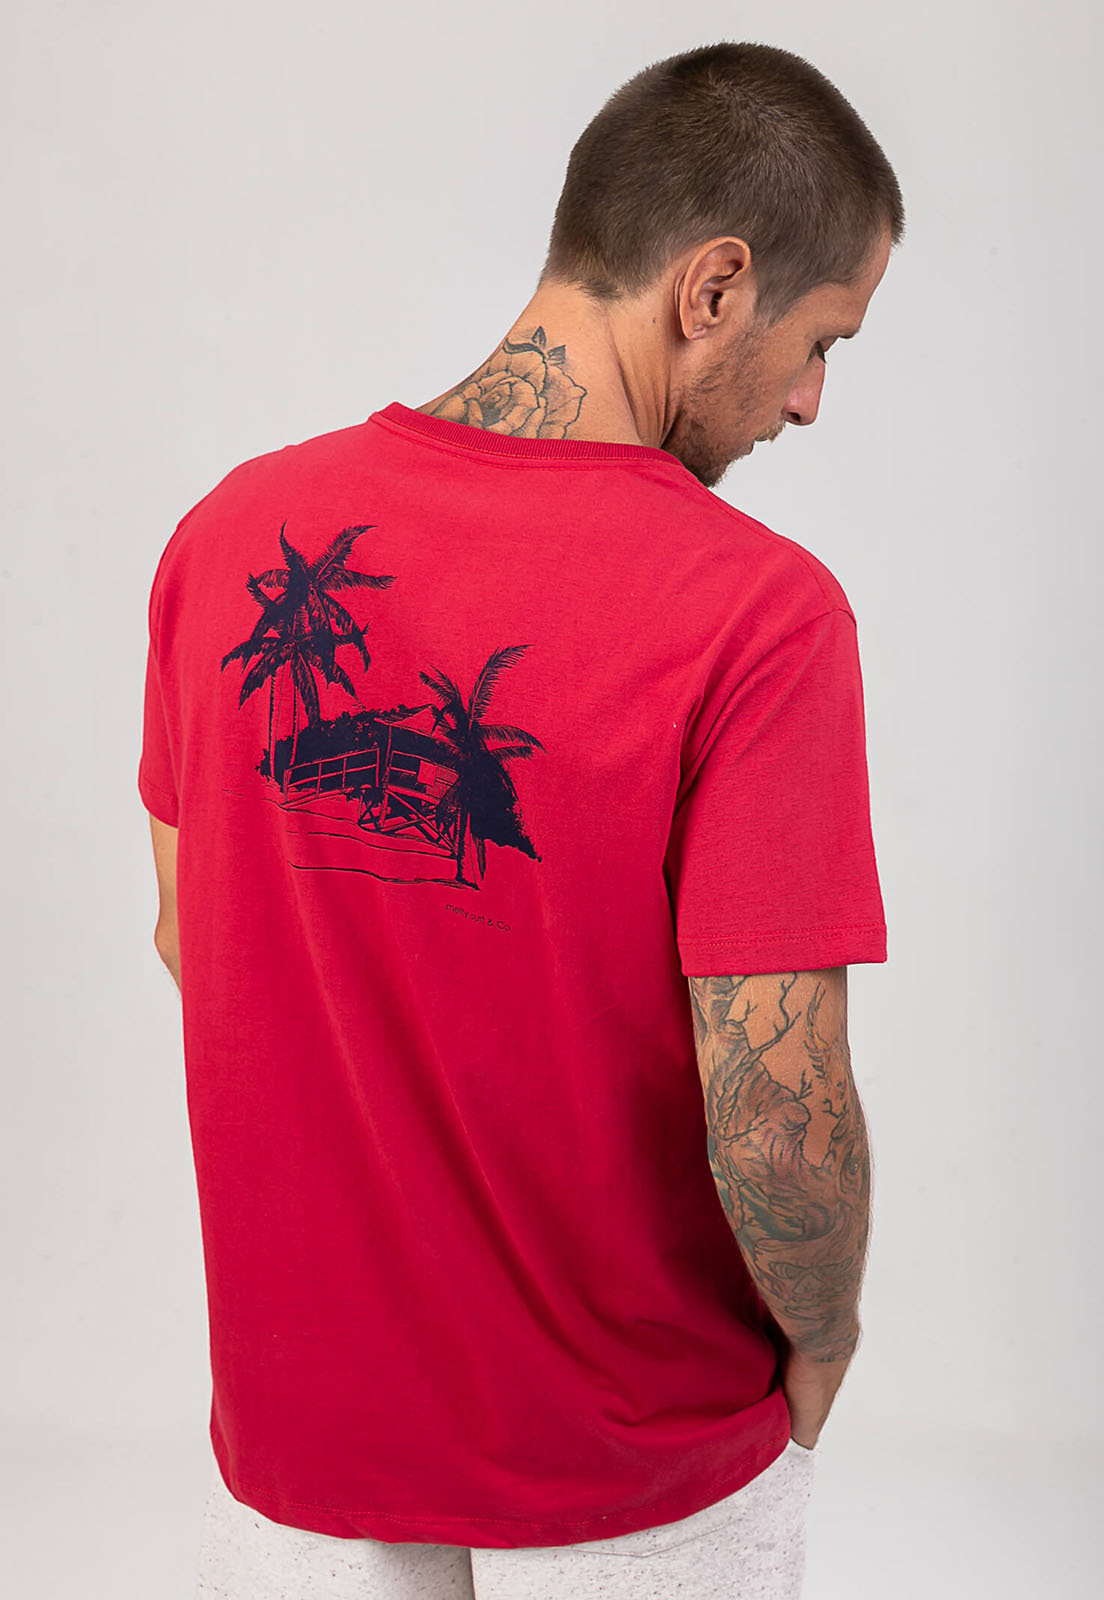 T-Shirt Friends Brigade Vermelha melty  - melty surf & Co.